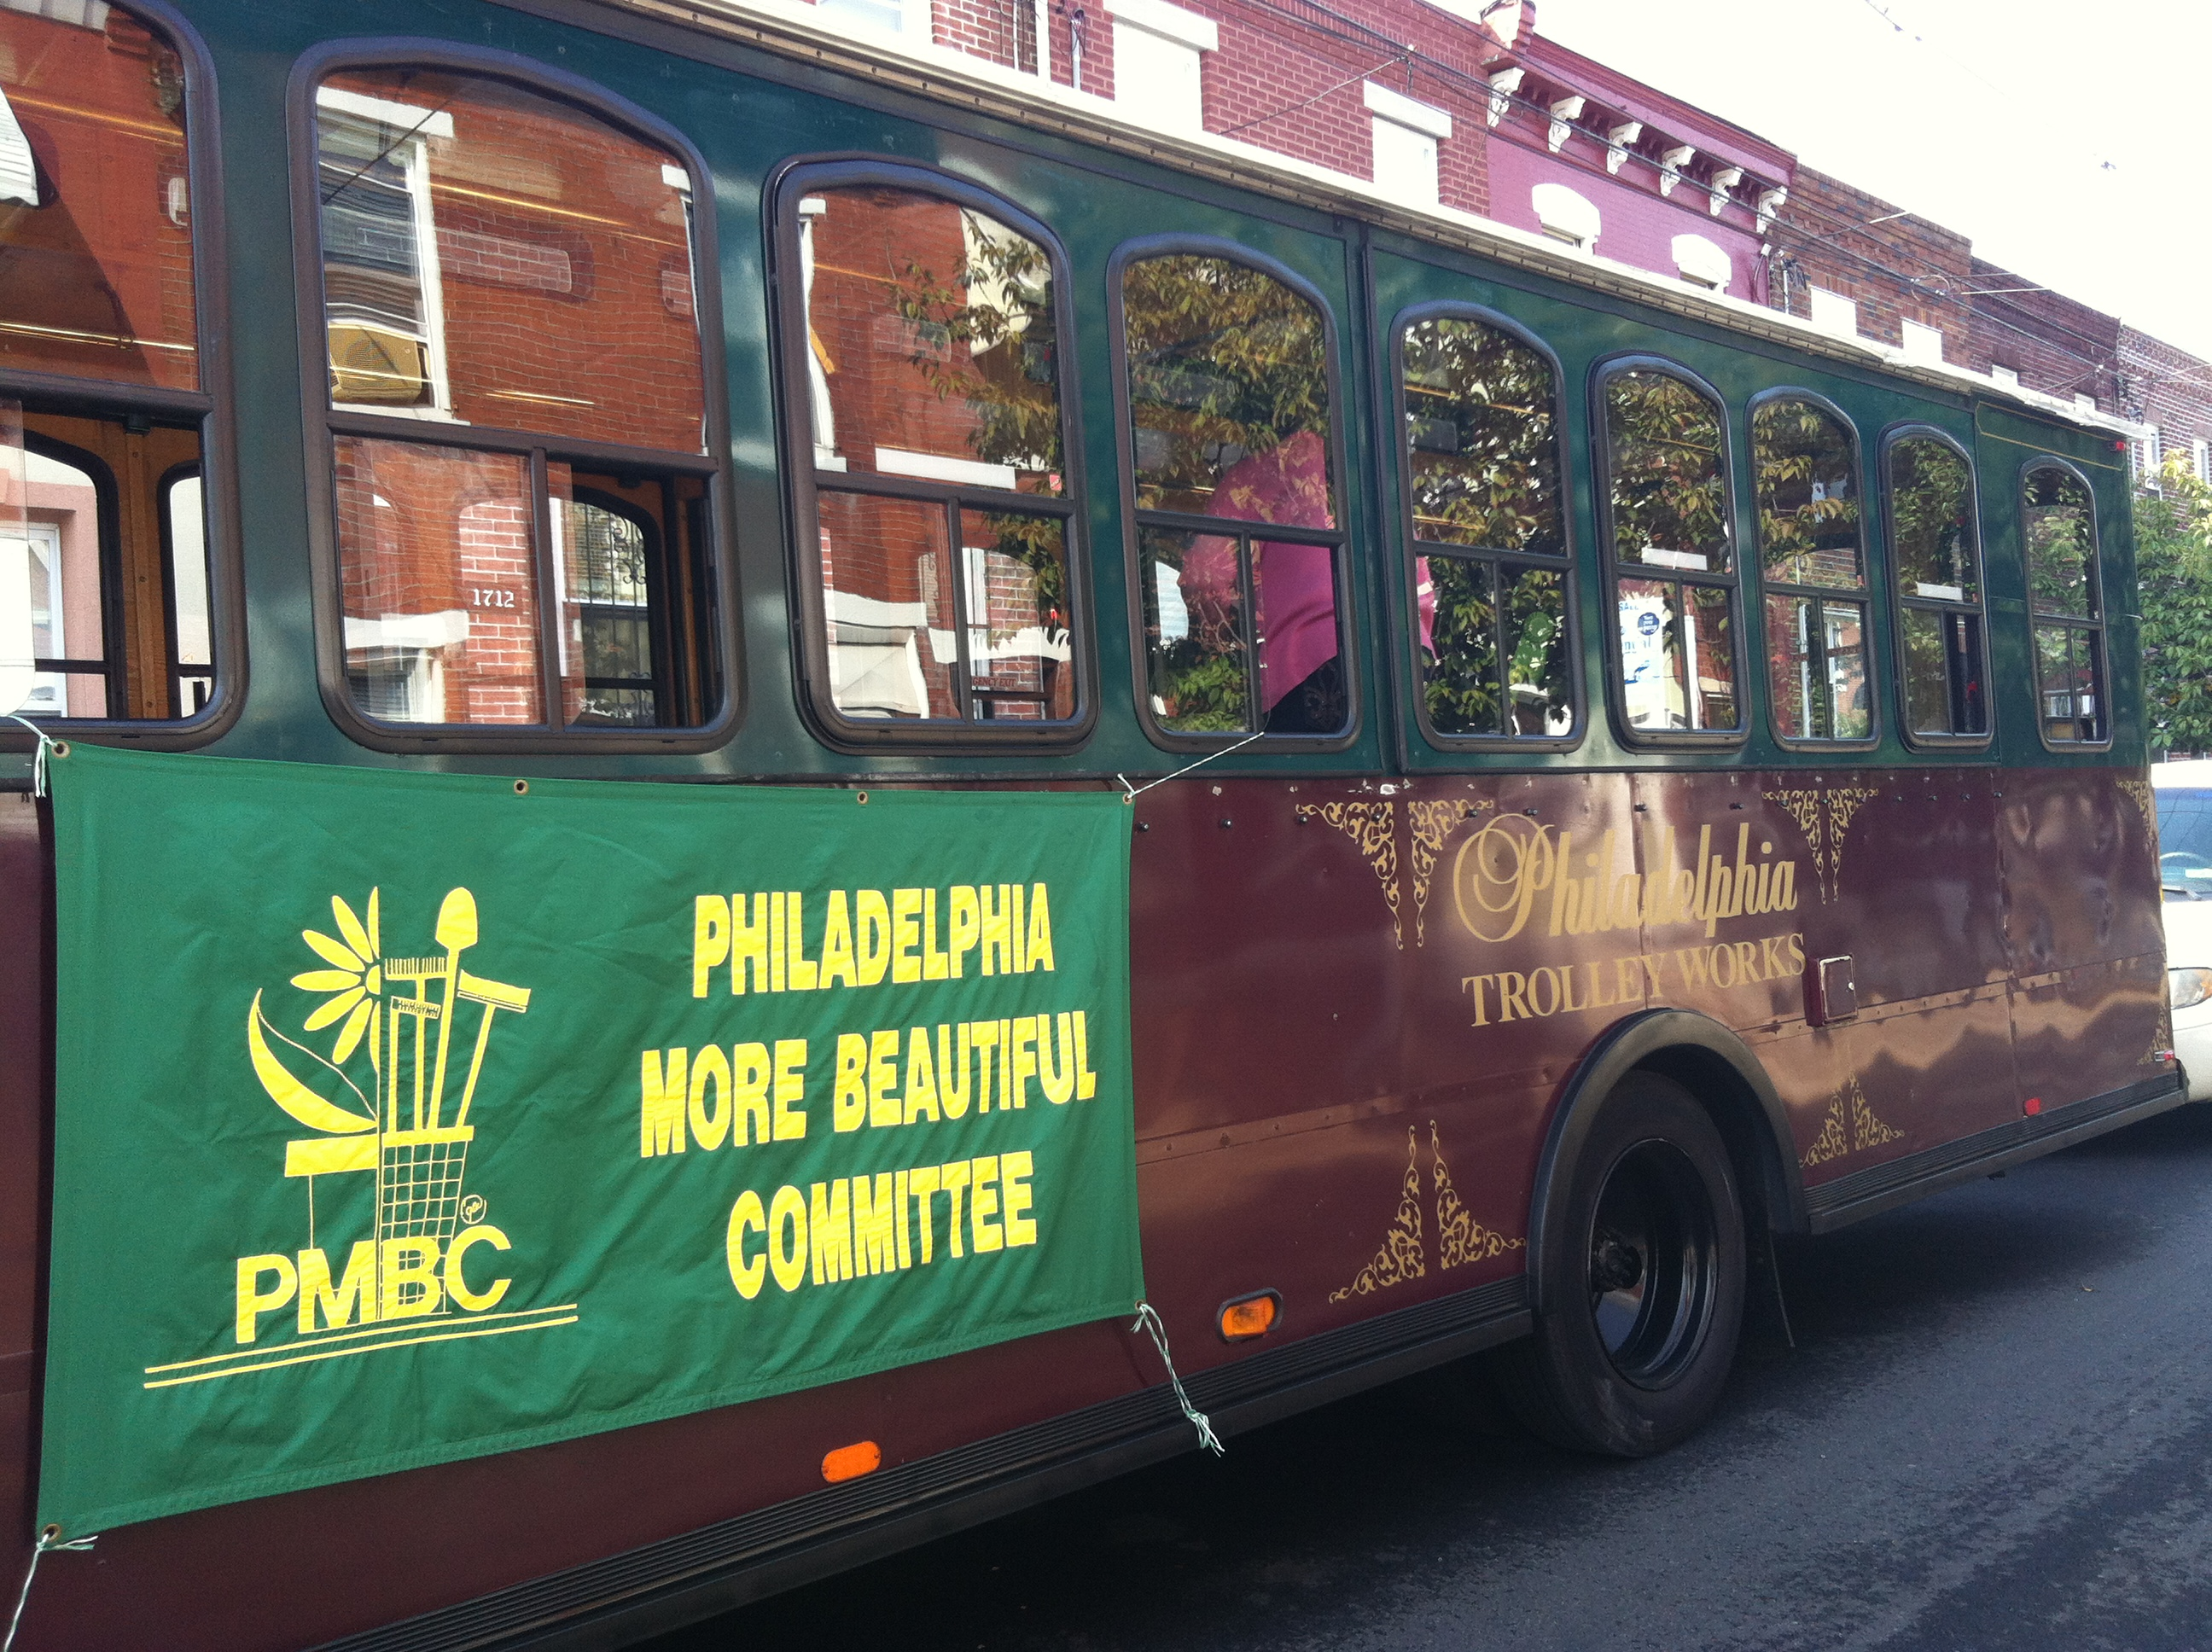 Around 20 citizen judges ride on the Philadelphia More Beautiful Clean Block Contest trolley escorted by police and several city vehicles.